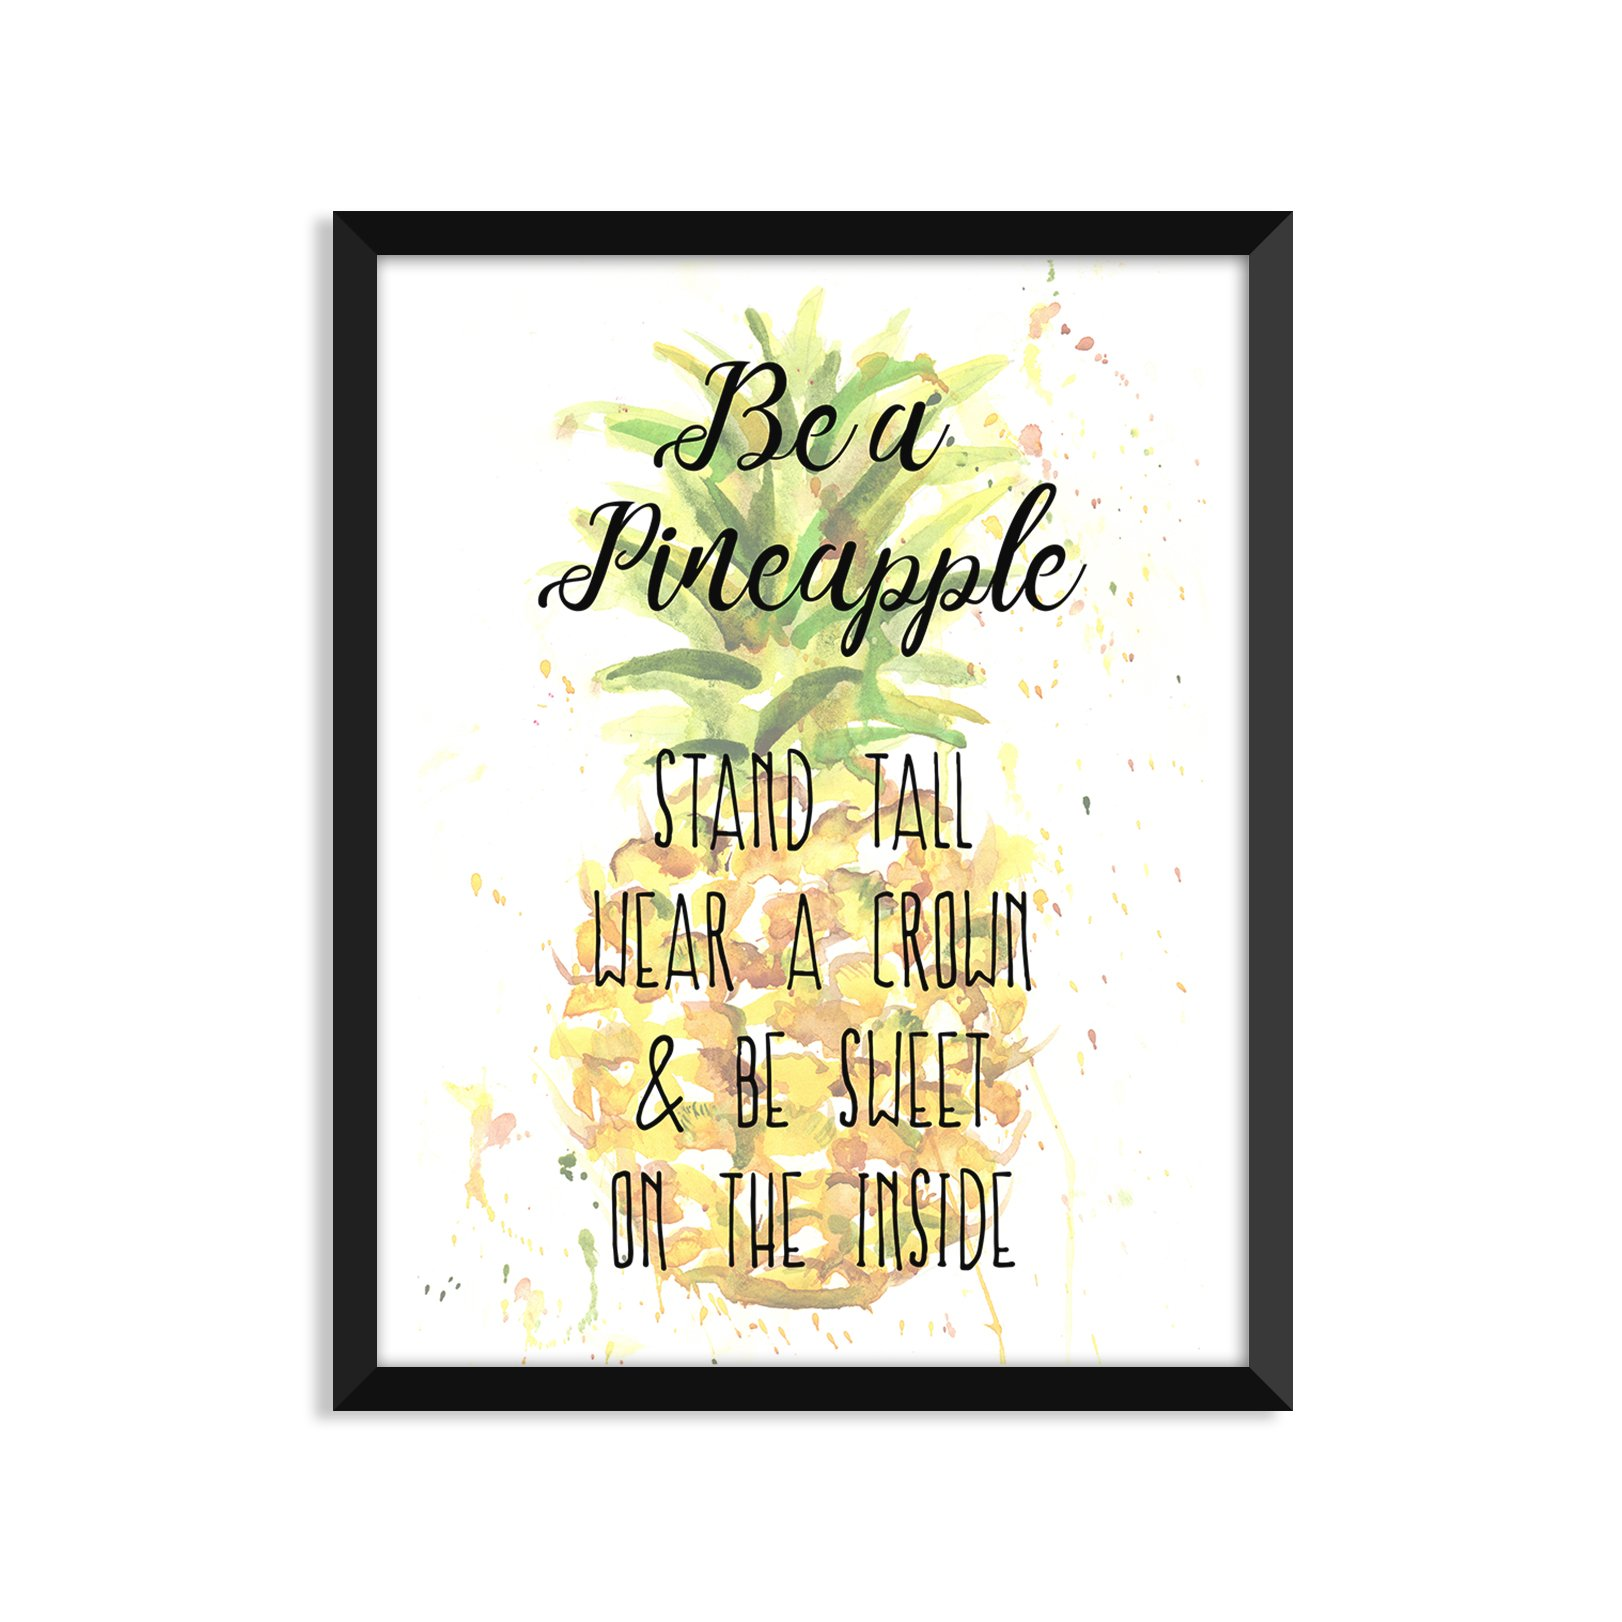 Be A Pineapple, Inspirational Quote, Minimalist Poster, Home Decor, College Dorm Room Decorations, Wall Art